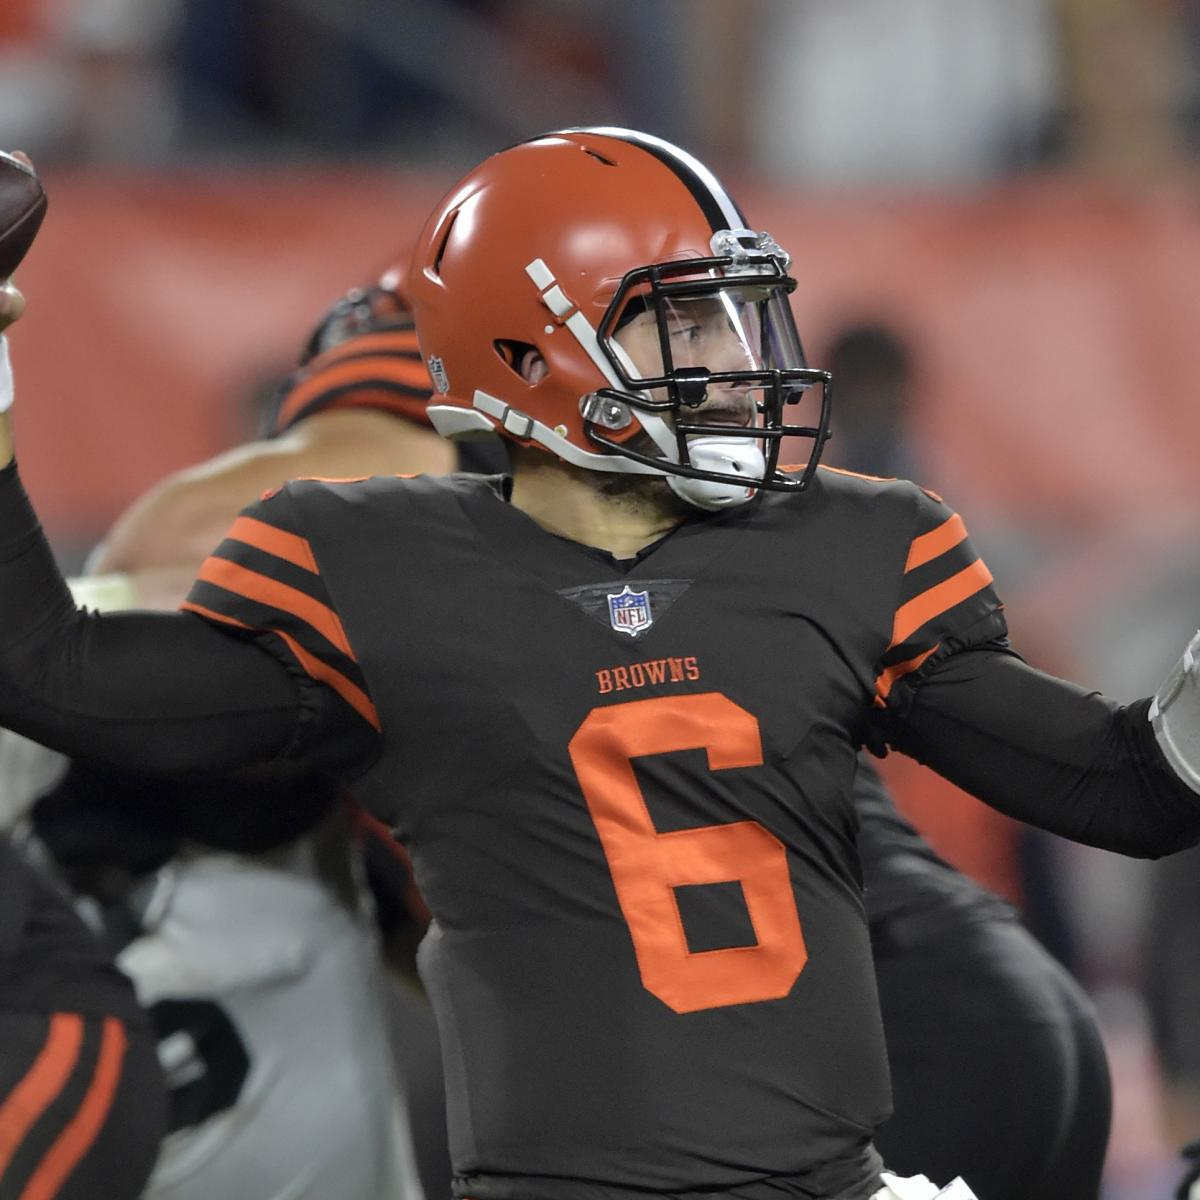 6b1cf516c Baker Mayfield Outshines Sam Darnold in Debut and Offers Tease of NFL s  Future